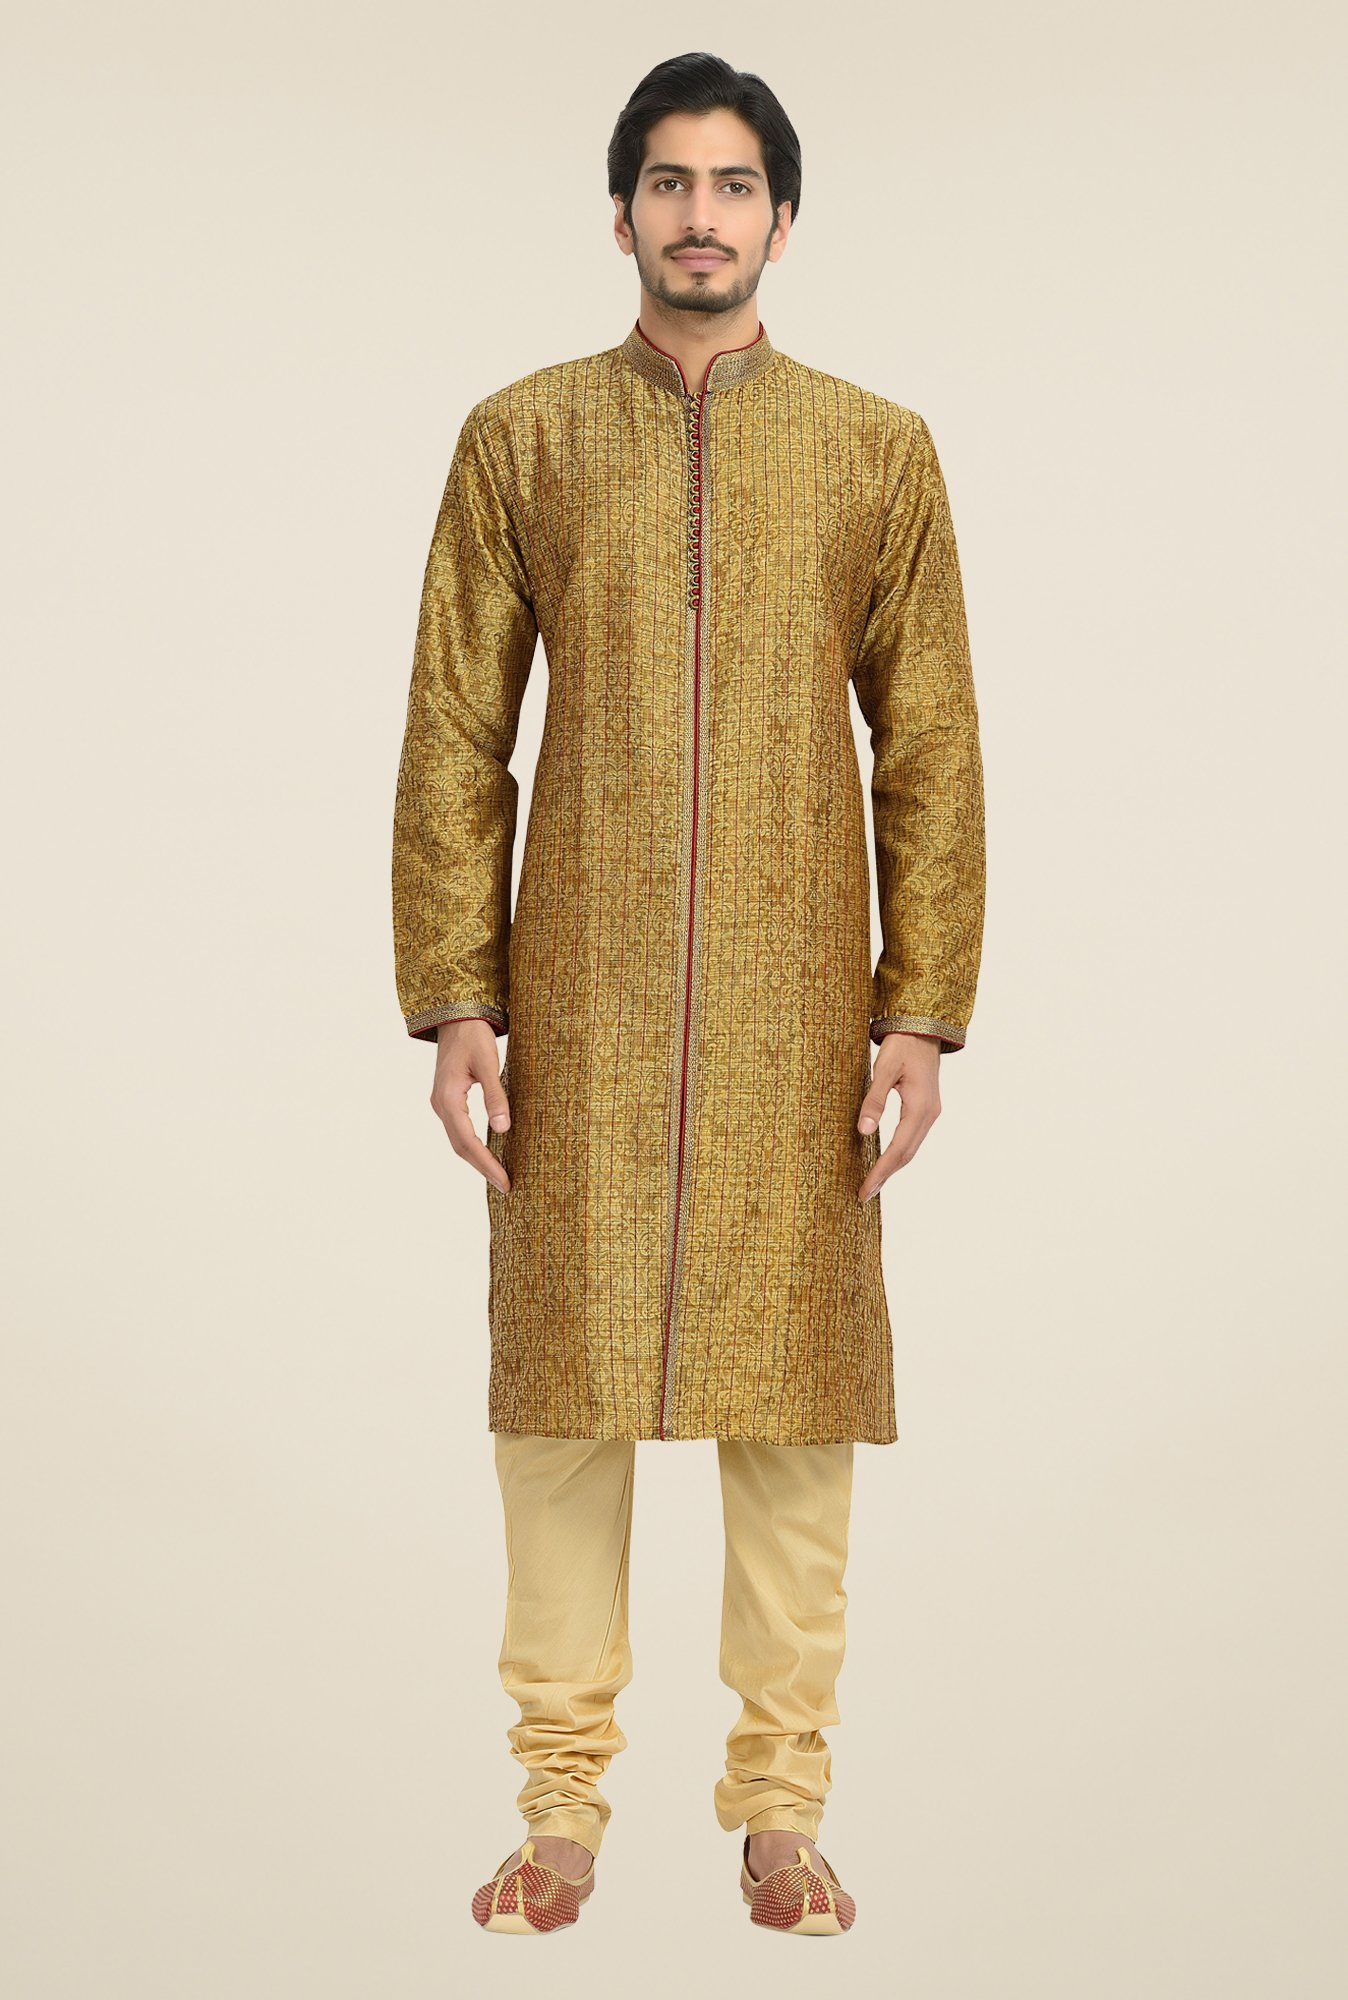 Manyavar Brown Self Print Kurta & Chudidar Set